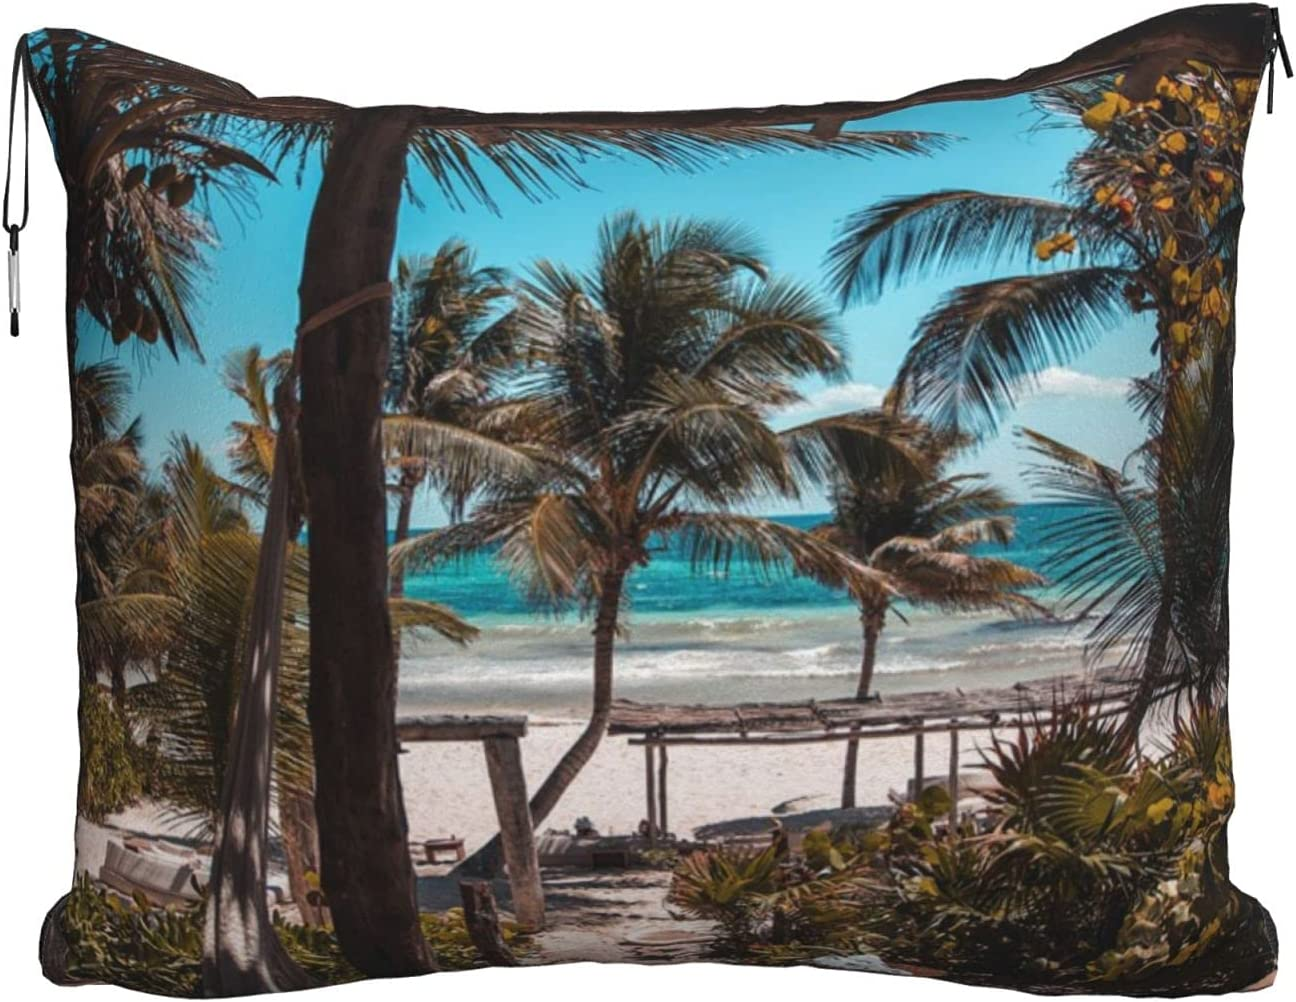 Mescchskbeach Palm OFFer Trees Print Travel Pillow Combo Blanket New Shipping Free Shipping Trave